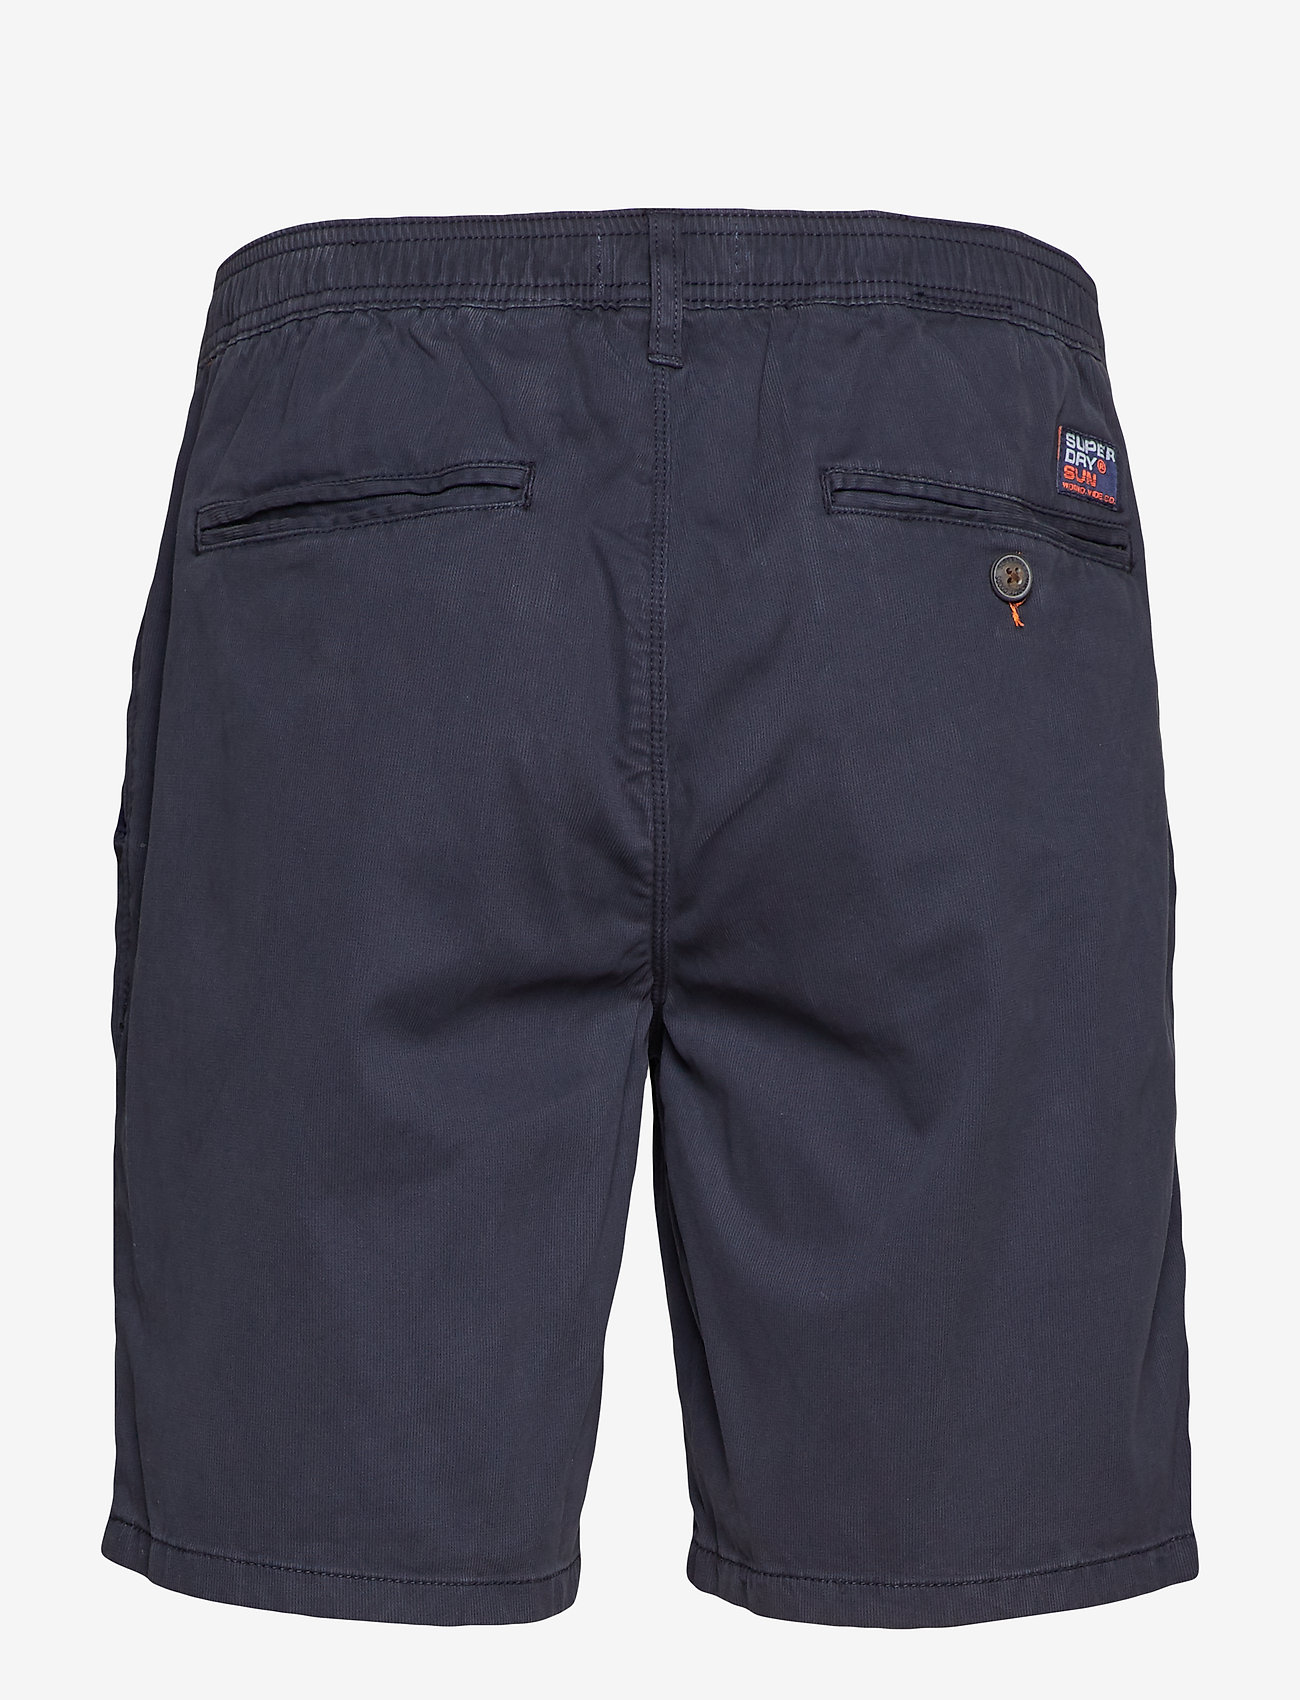 Superdry SUNSCORCHED SHORT - Badetøy MIDNIGHT NAVY - Menn Klær